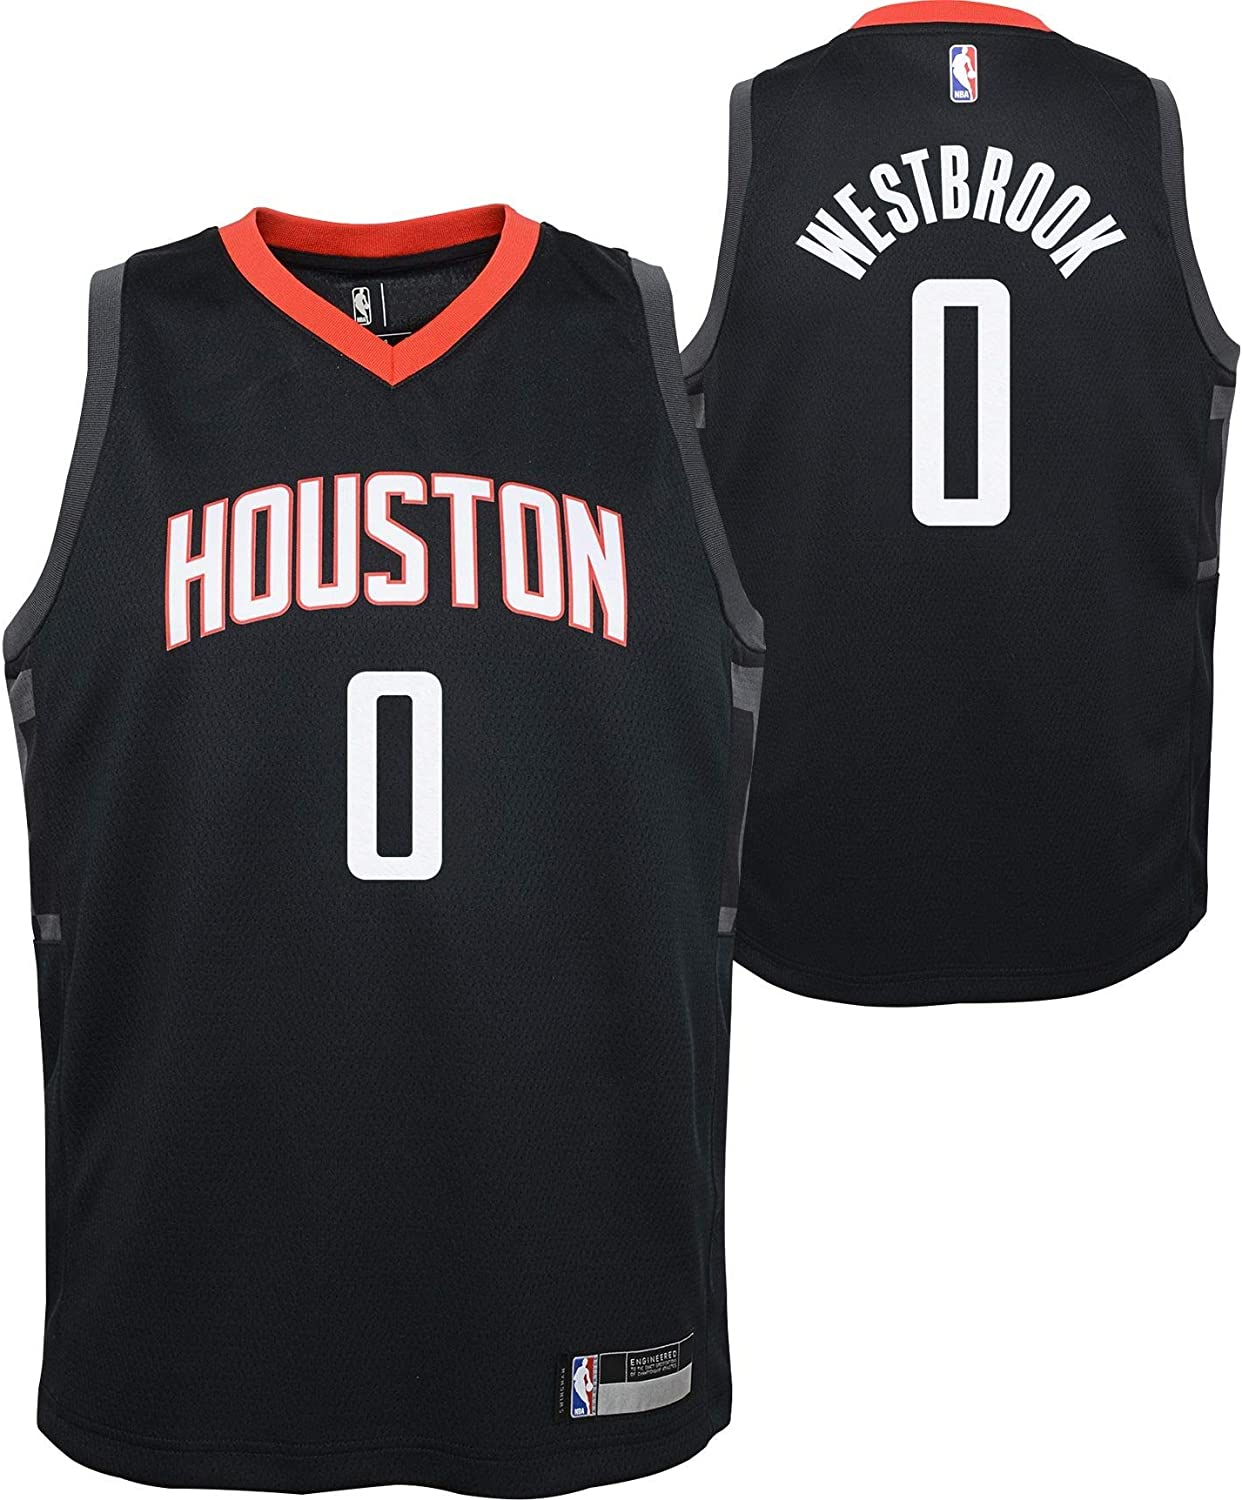 Outerstuff Russell Westbrook Houston Rockets #0 Youth 8-20 Black Statement Edition Swingman Jersey